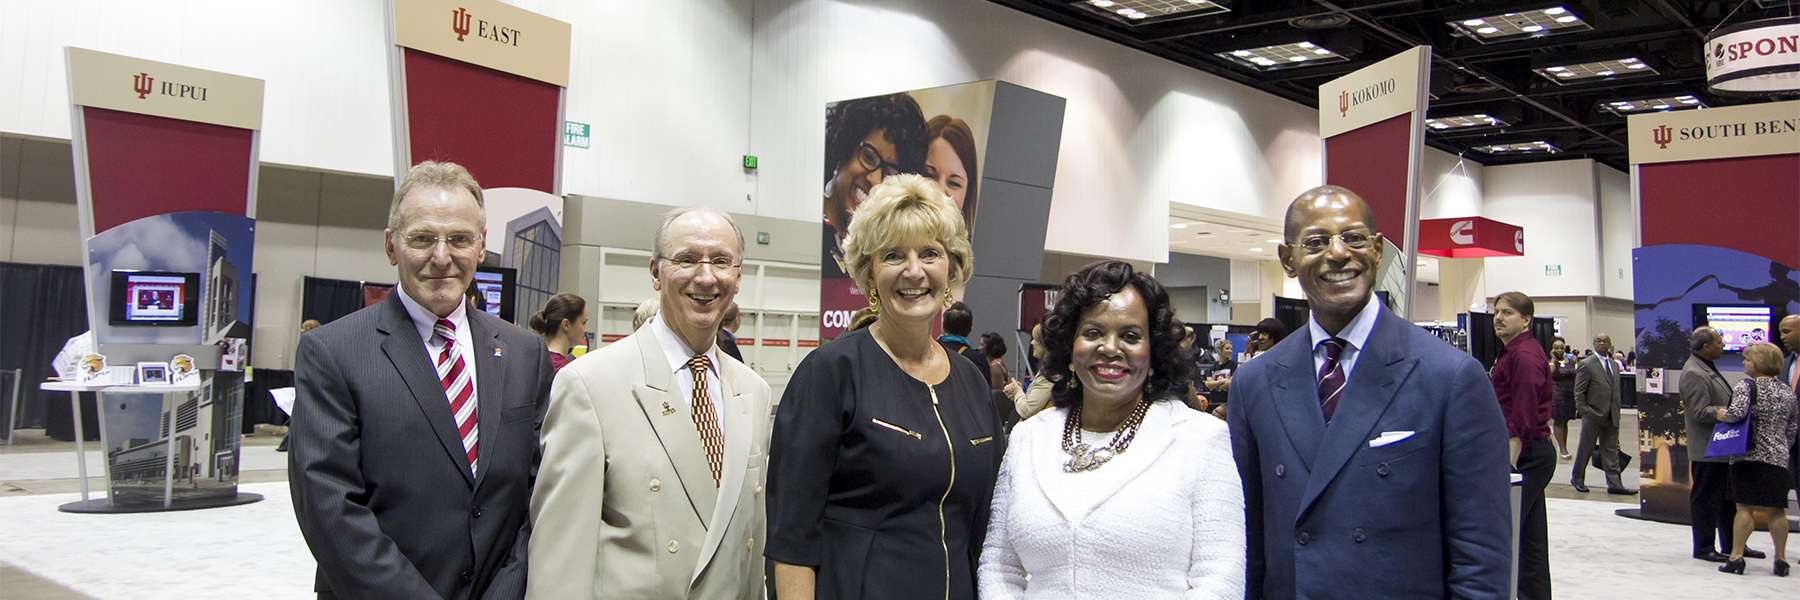 Speakers stand together at the Indiana Black Expo.